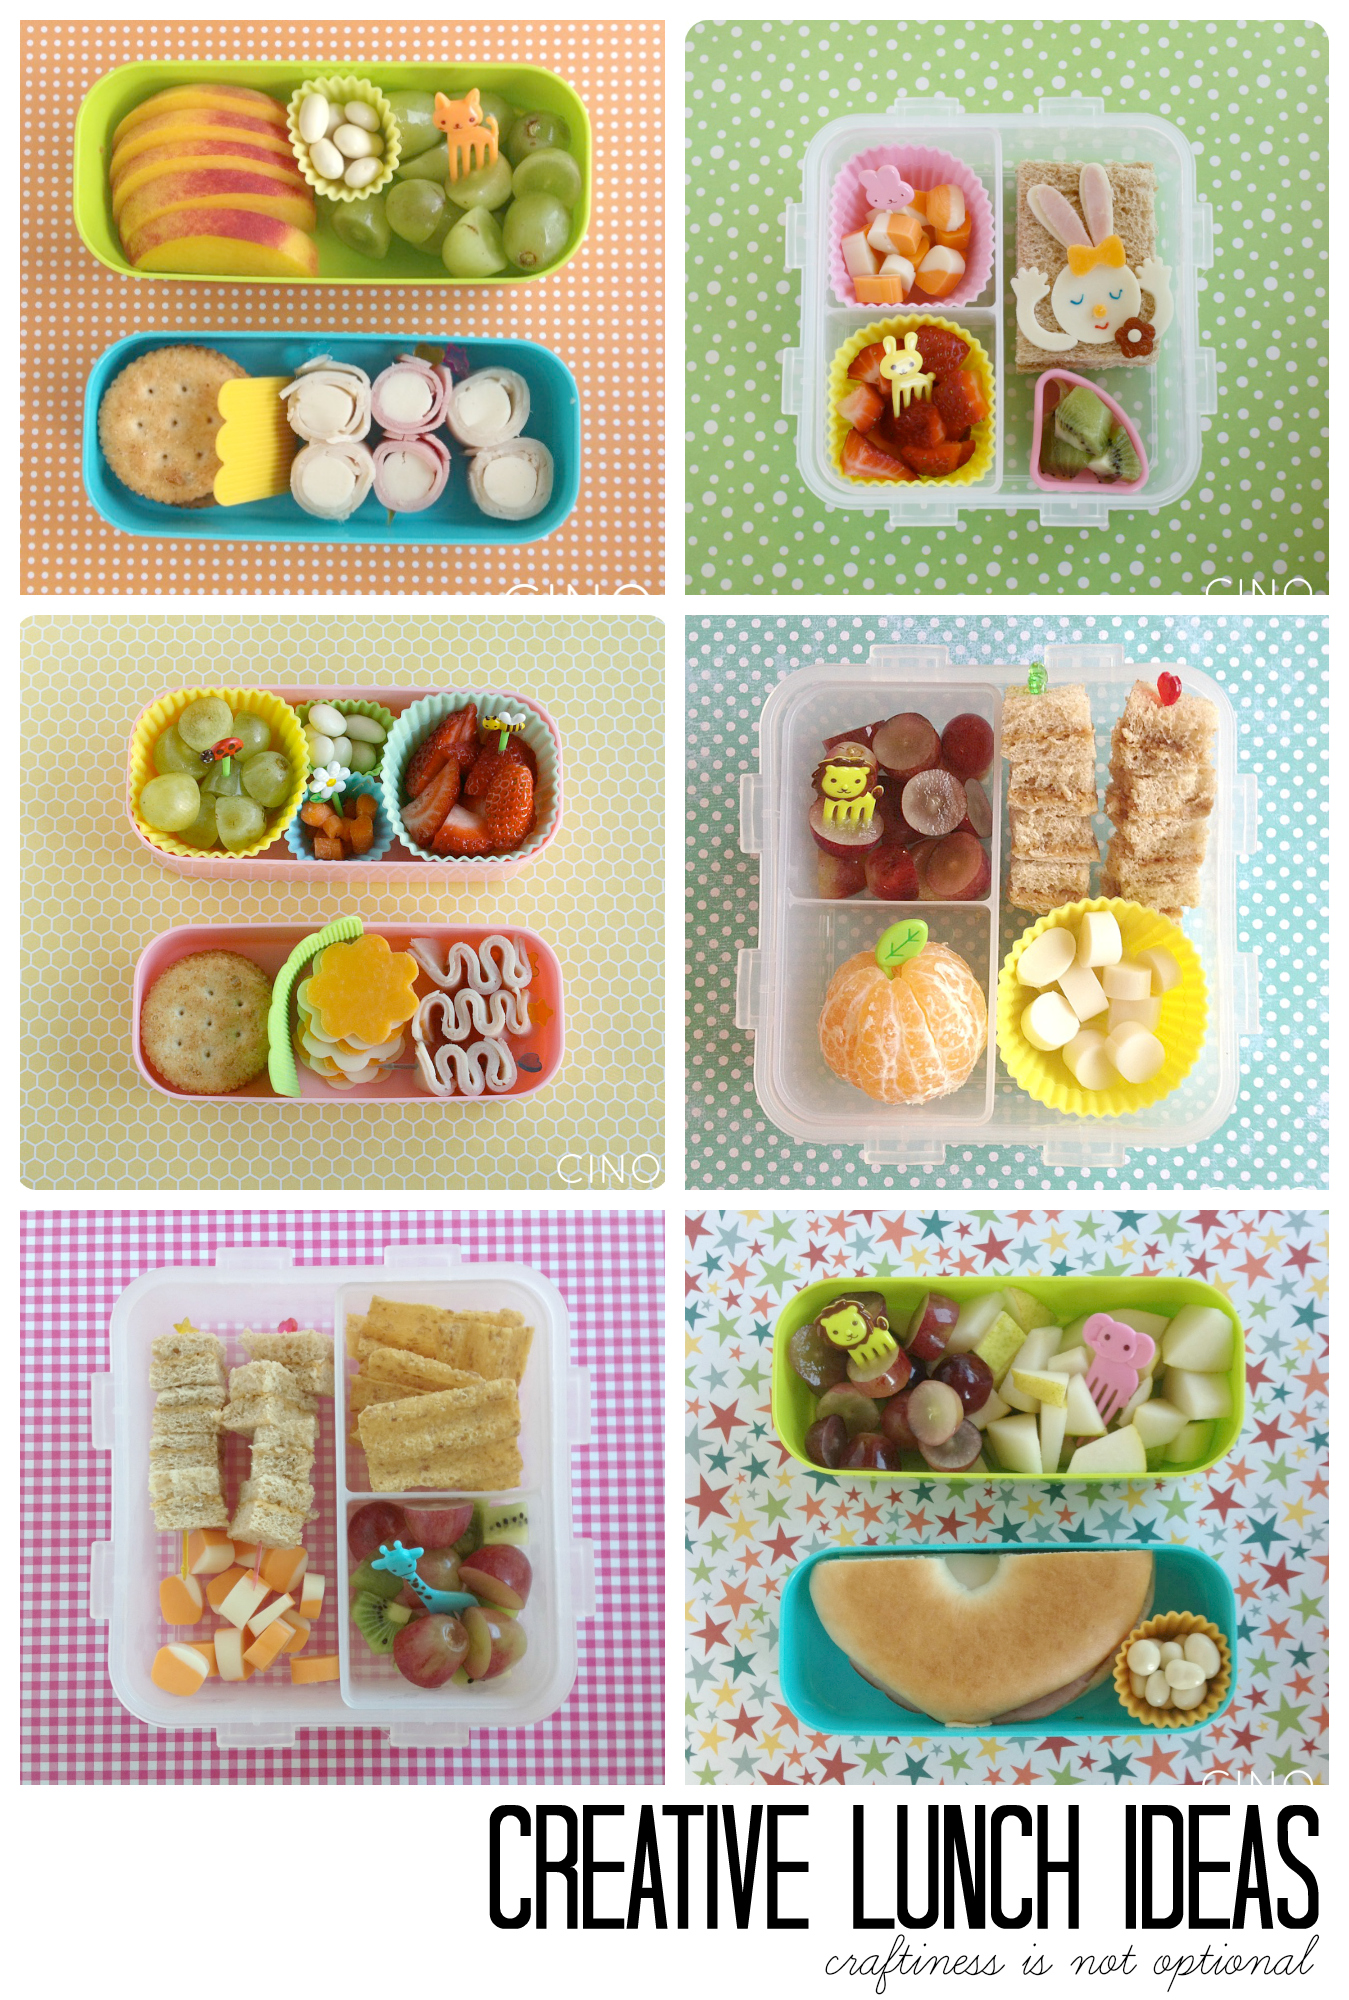 fun lunch ideas at craftiness is not optional